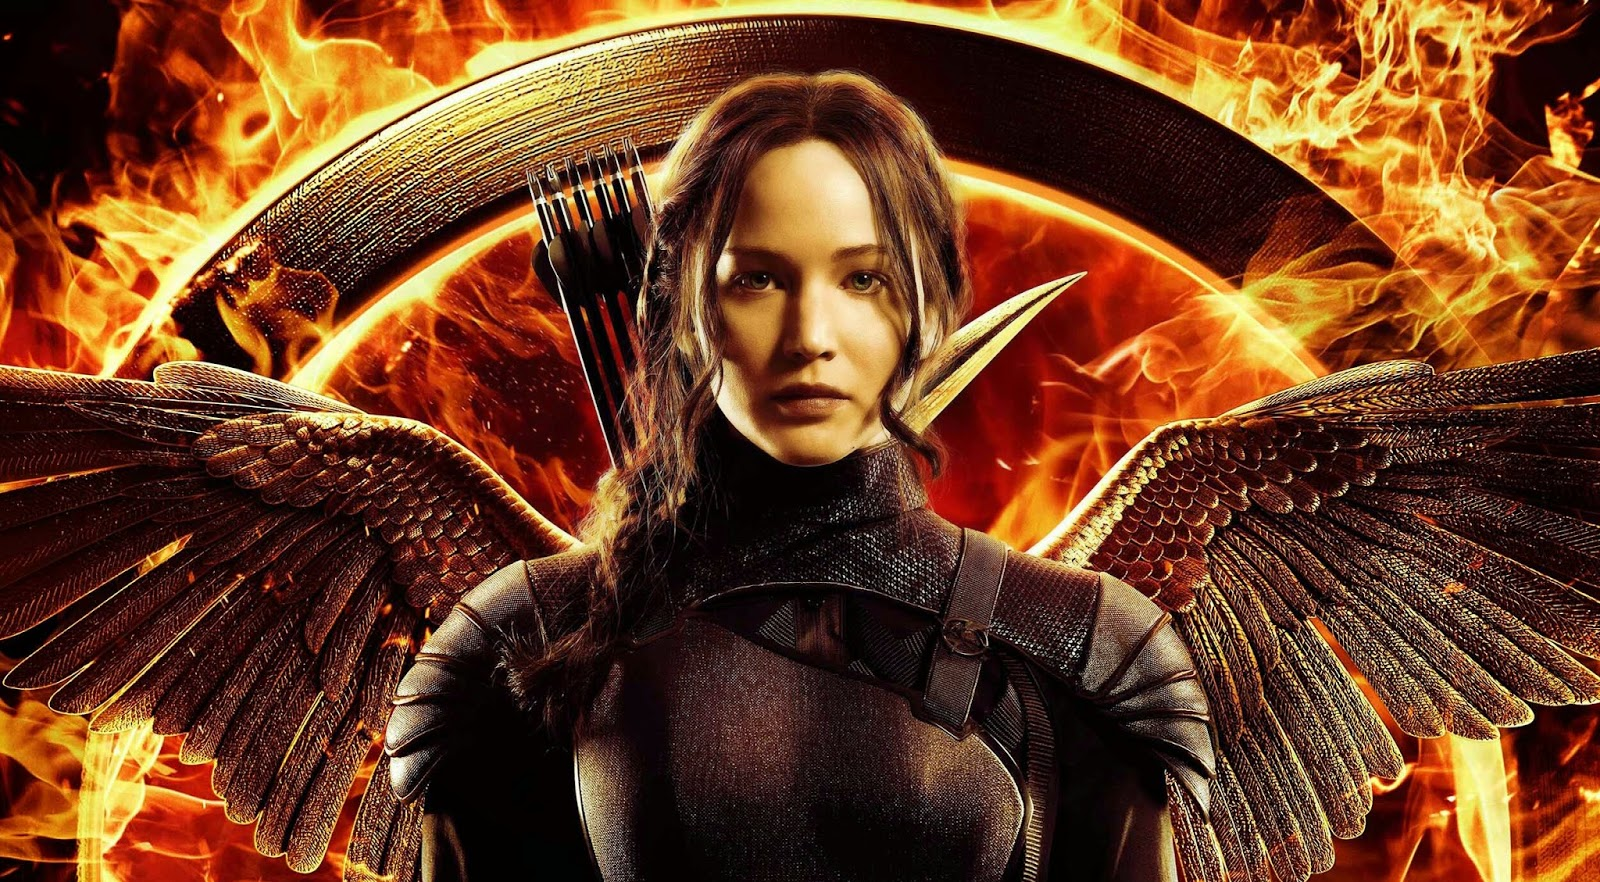 tmp_25968-katniss-everdeen-hunger-games-3-teaser-trailer-poster-officiel-1-1181063768